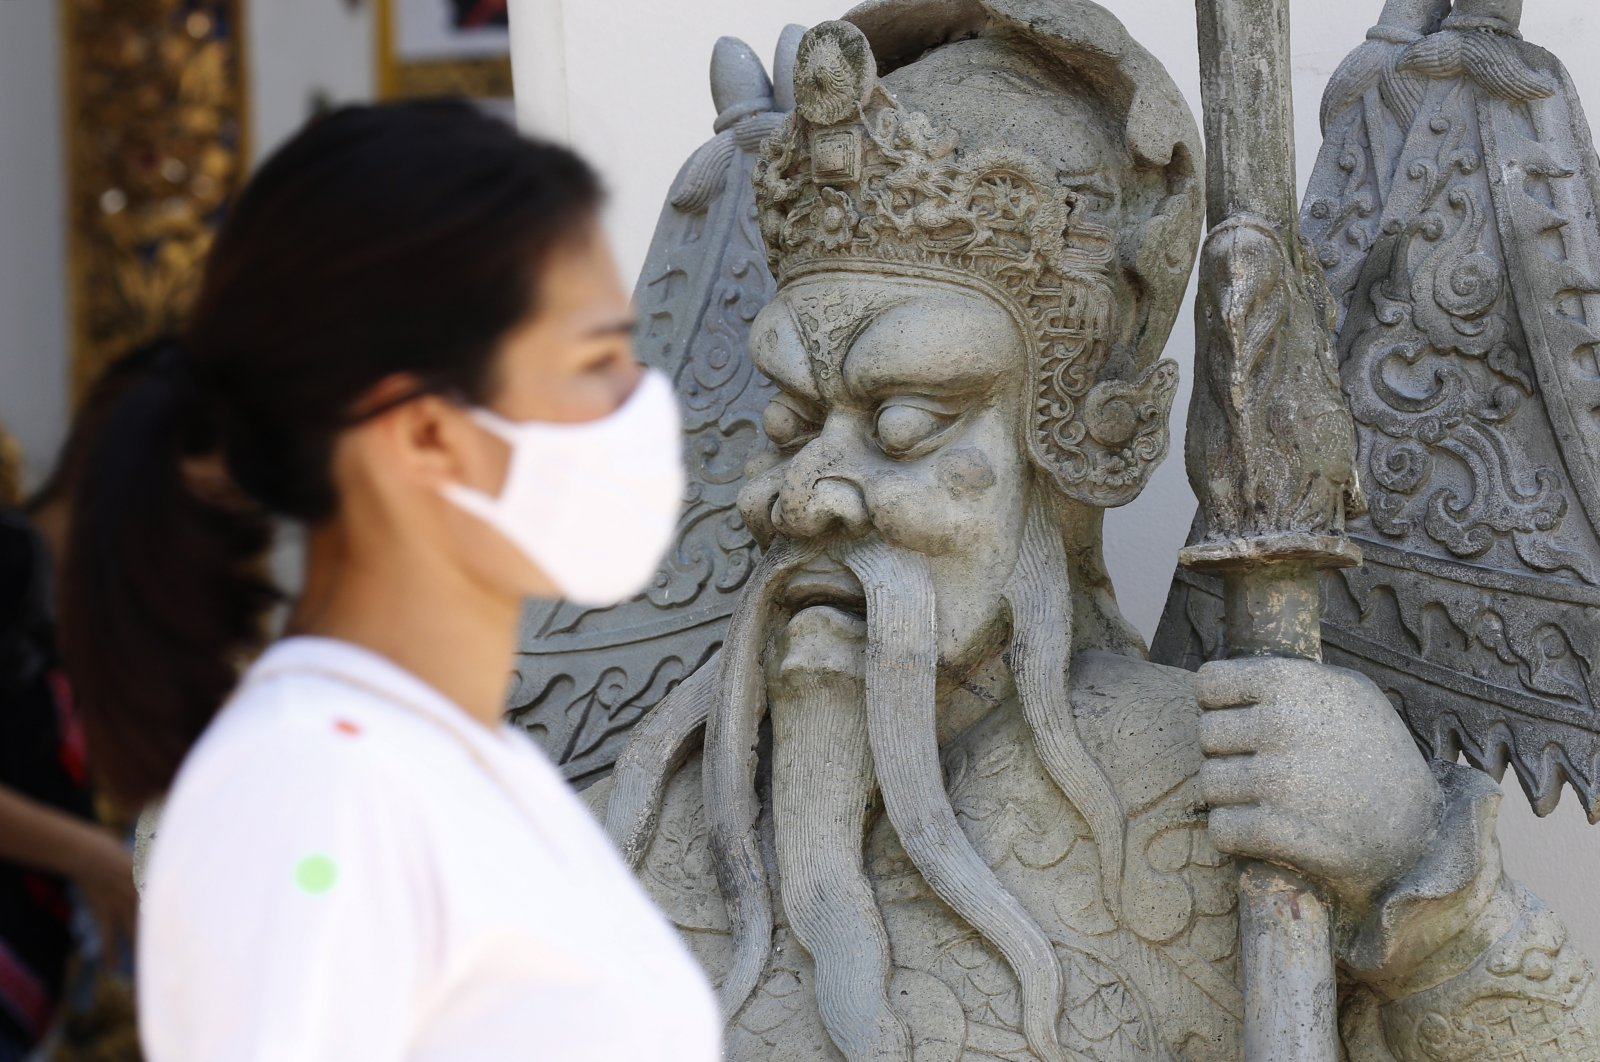 A Thai woman wears a face mask as she walks past a Chinese warrior statue inside Wat Pho temple in Bangkok, Thailand, June 13, 2020. (EPA Photo)